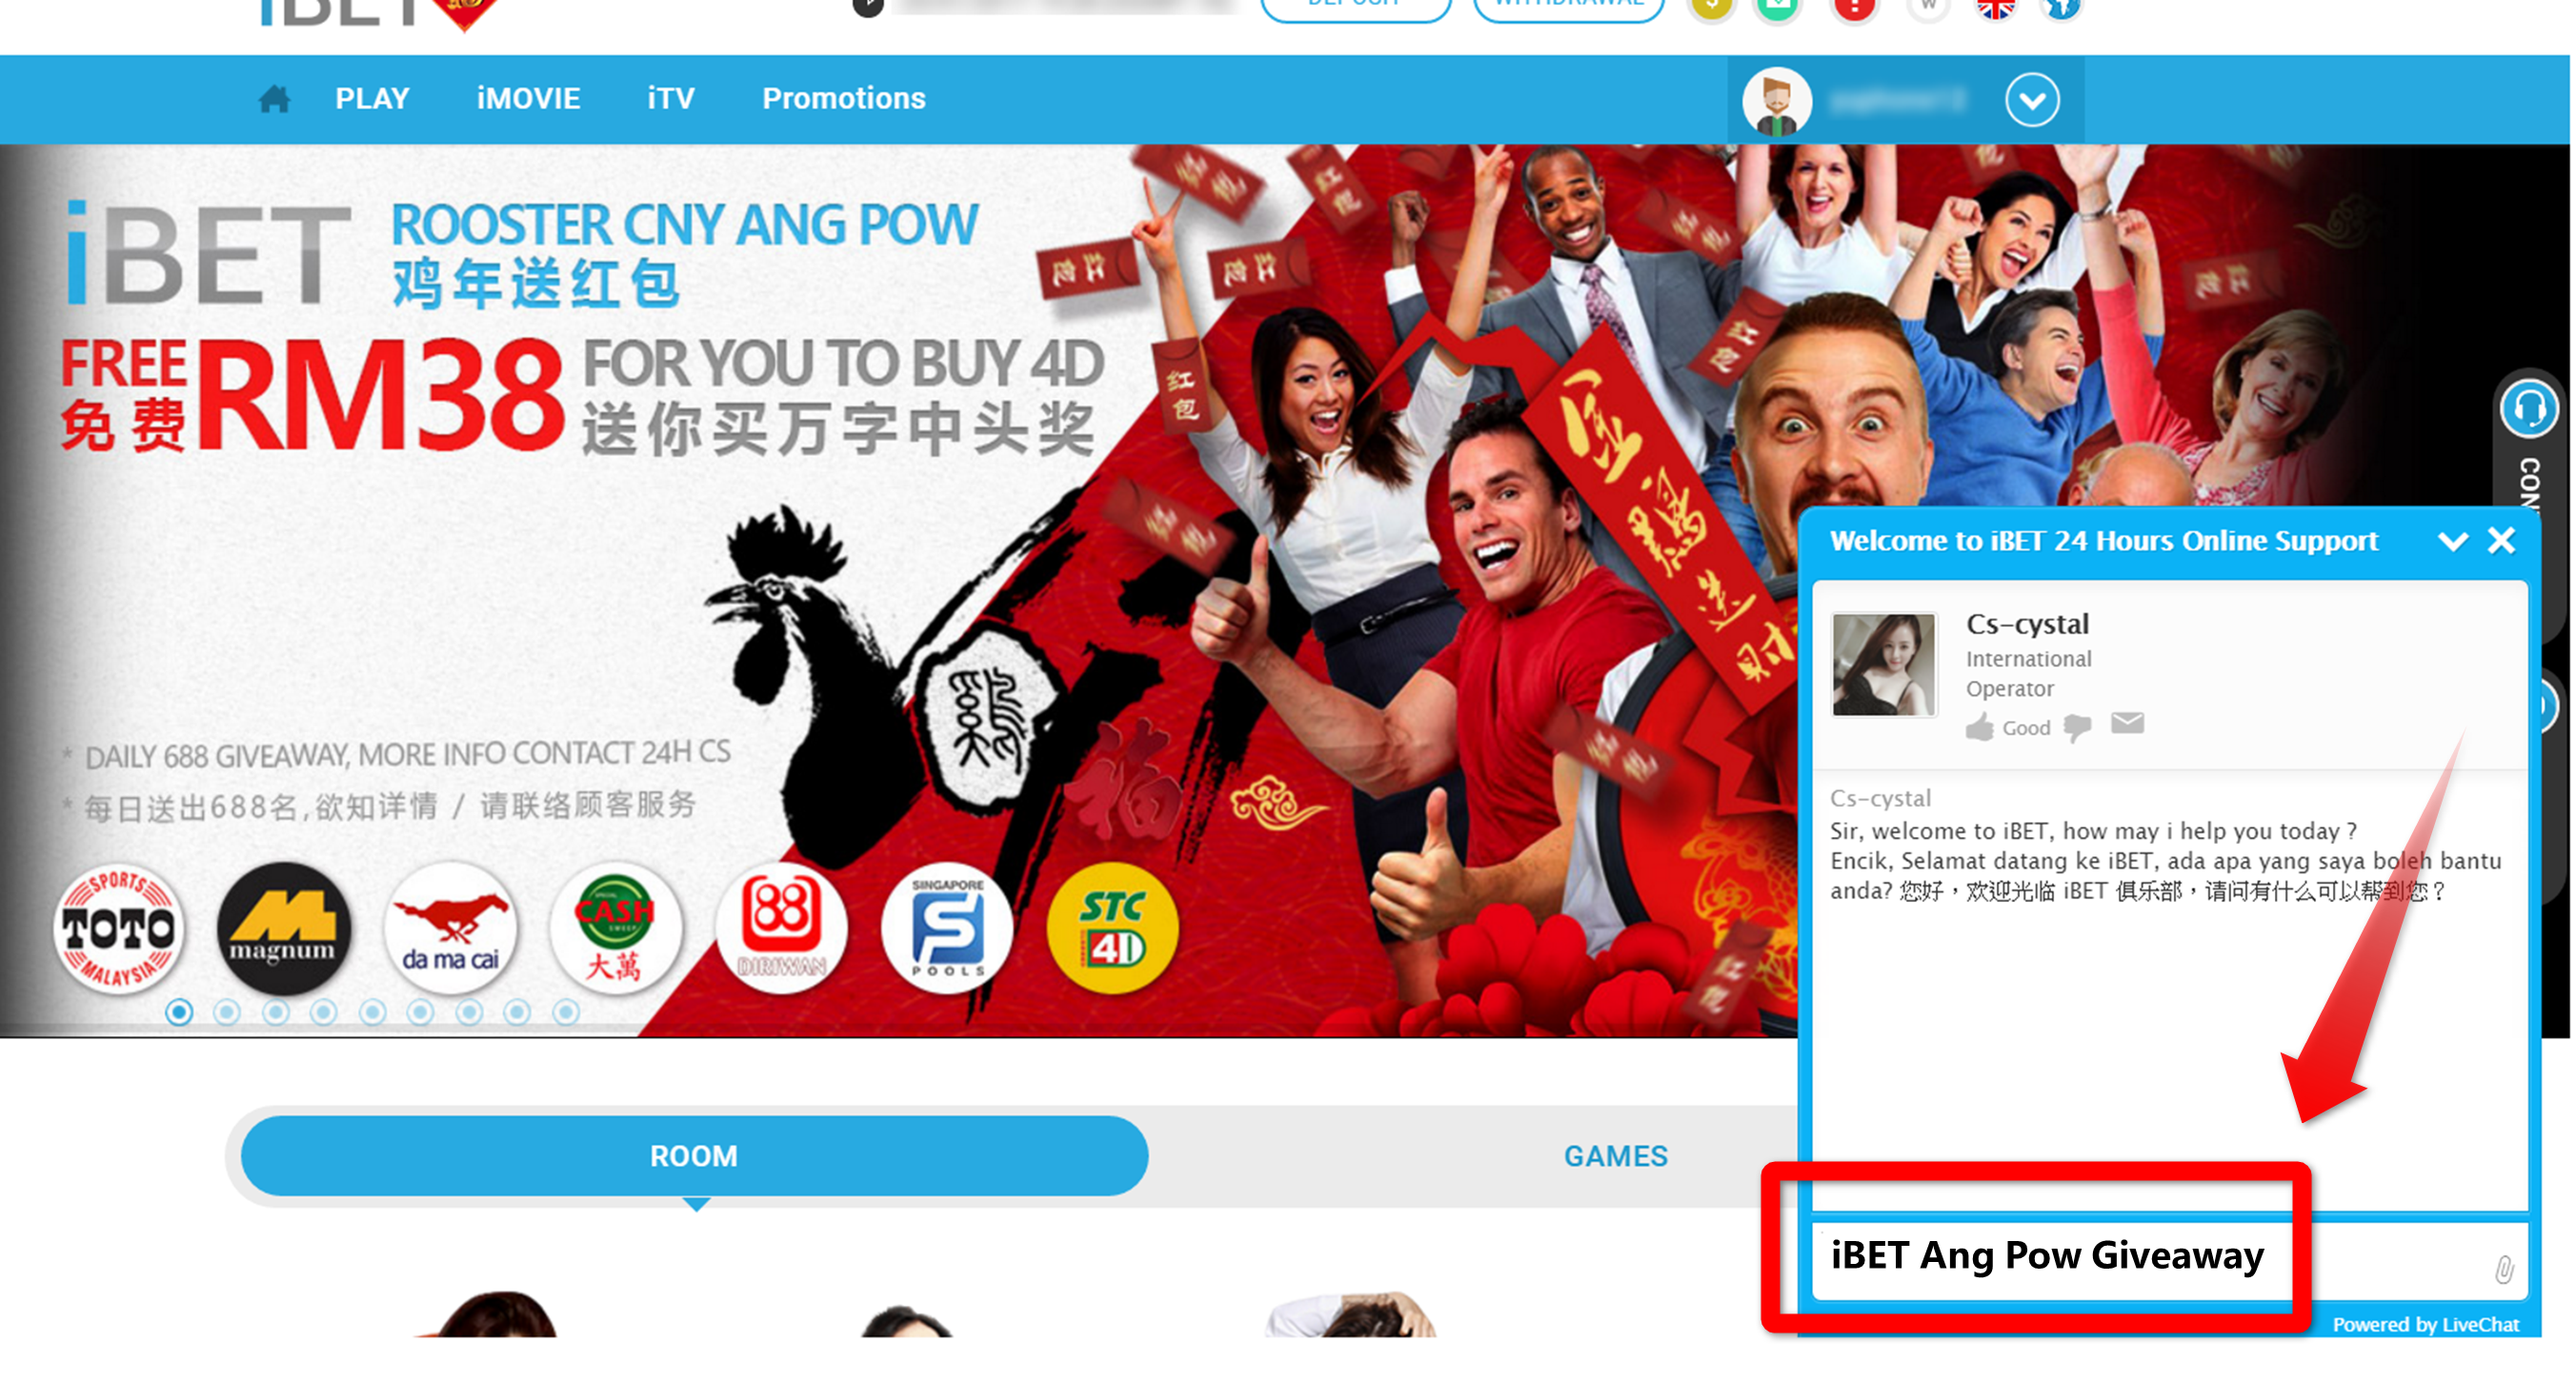 Get ibet free rm38 angpow at rooster cny tutorial 4dresult for Ang pow koi fish tutorial